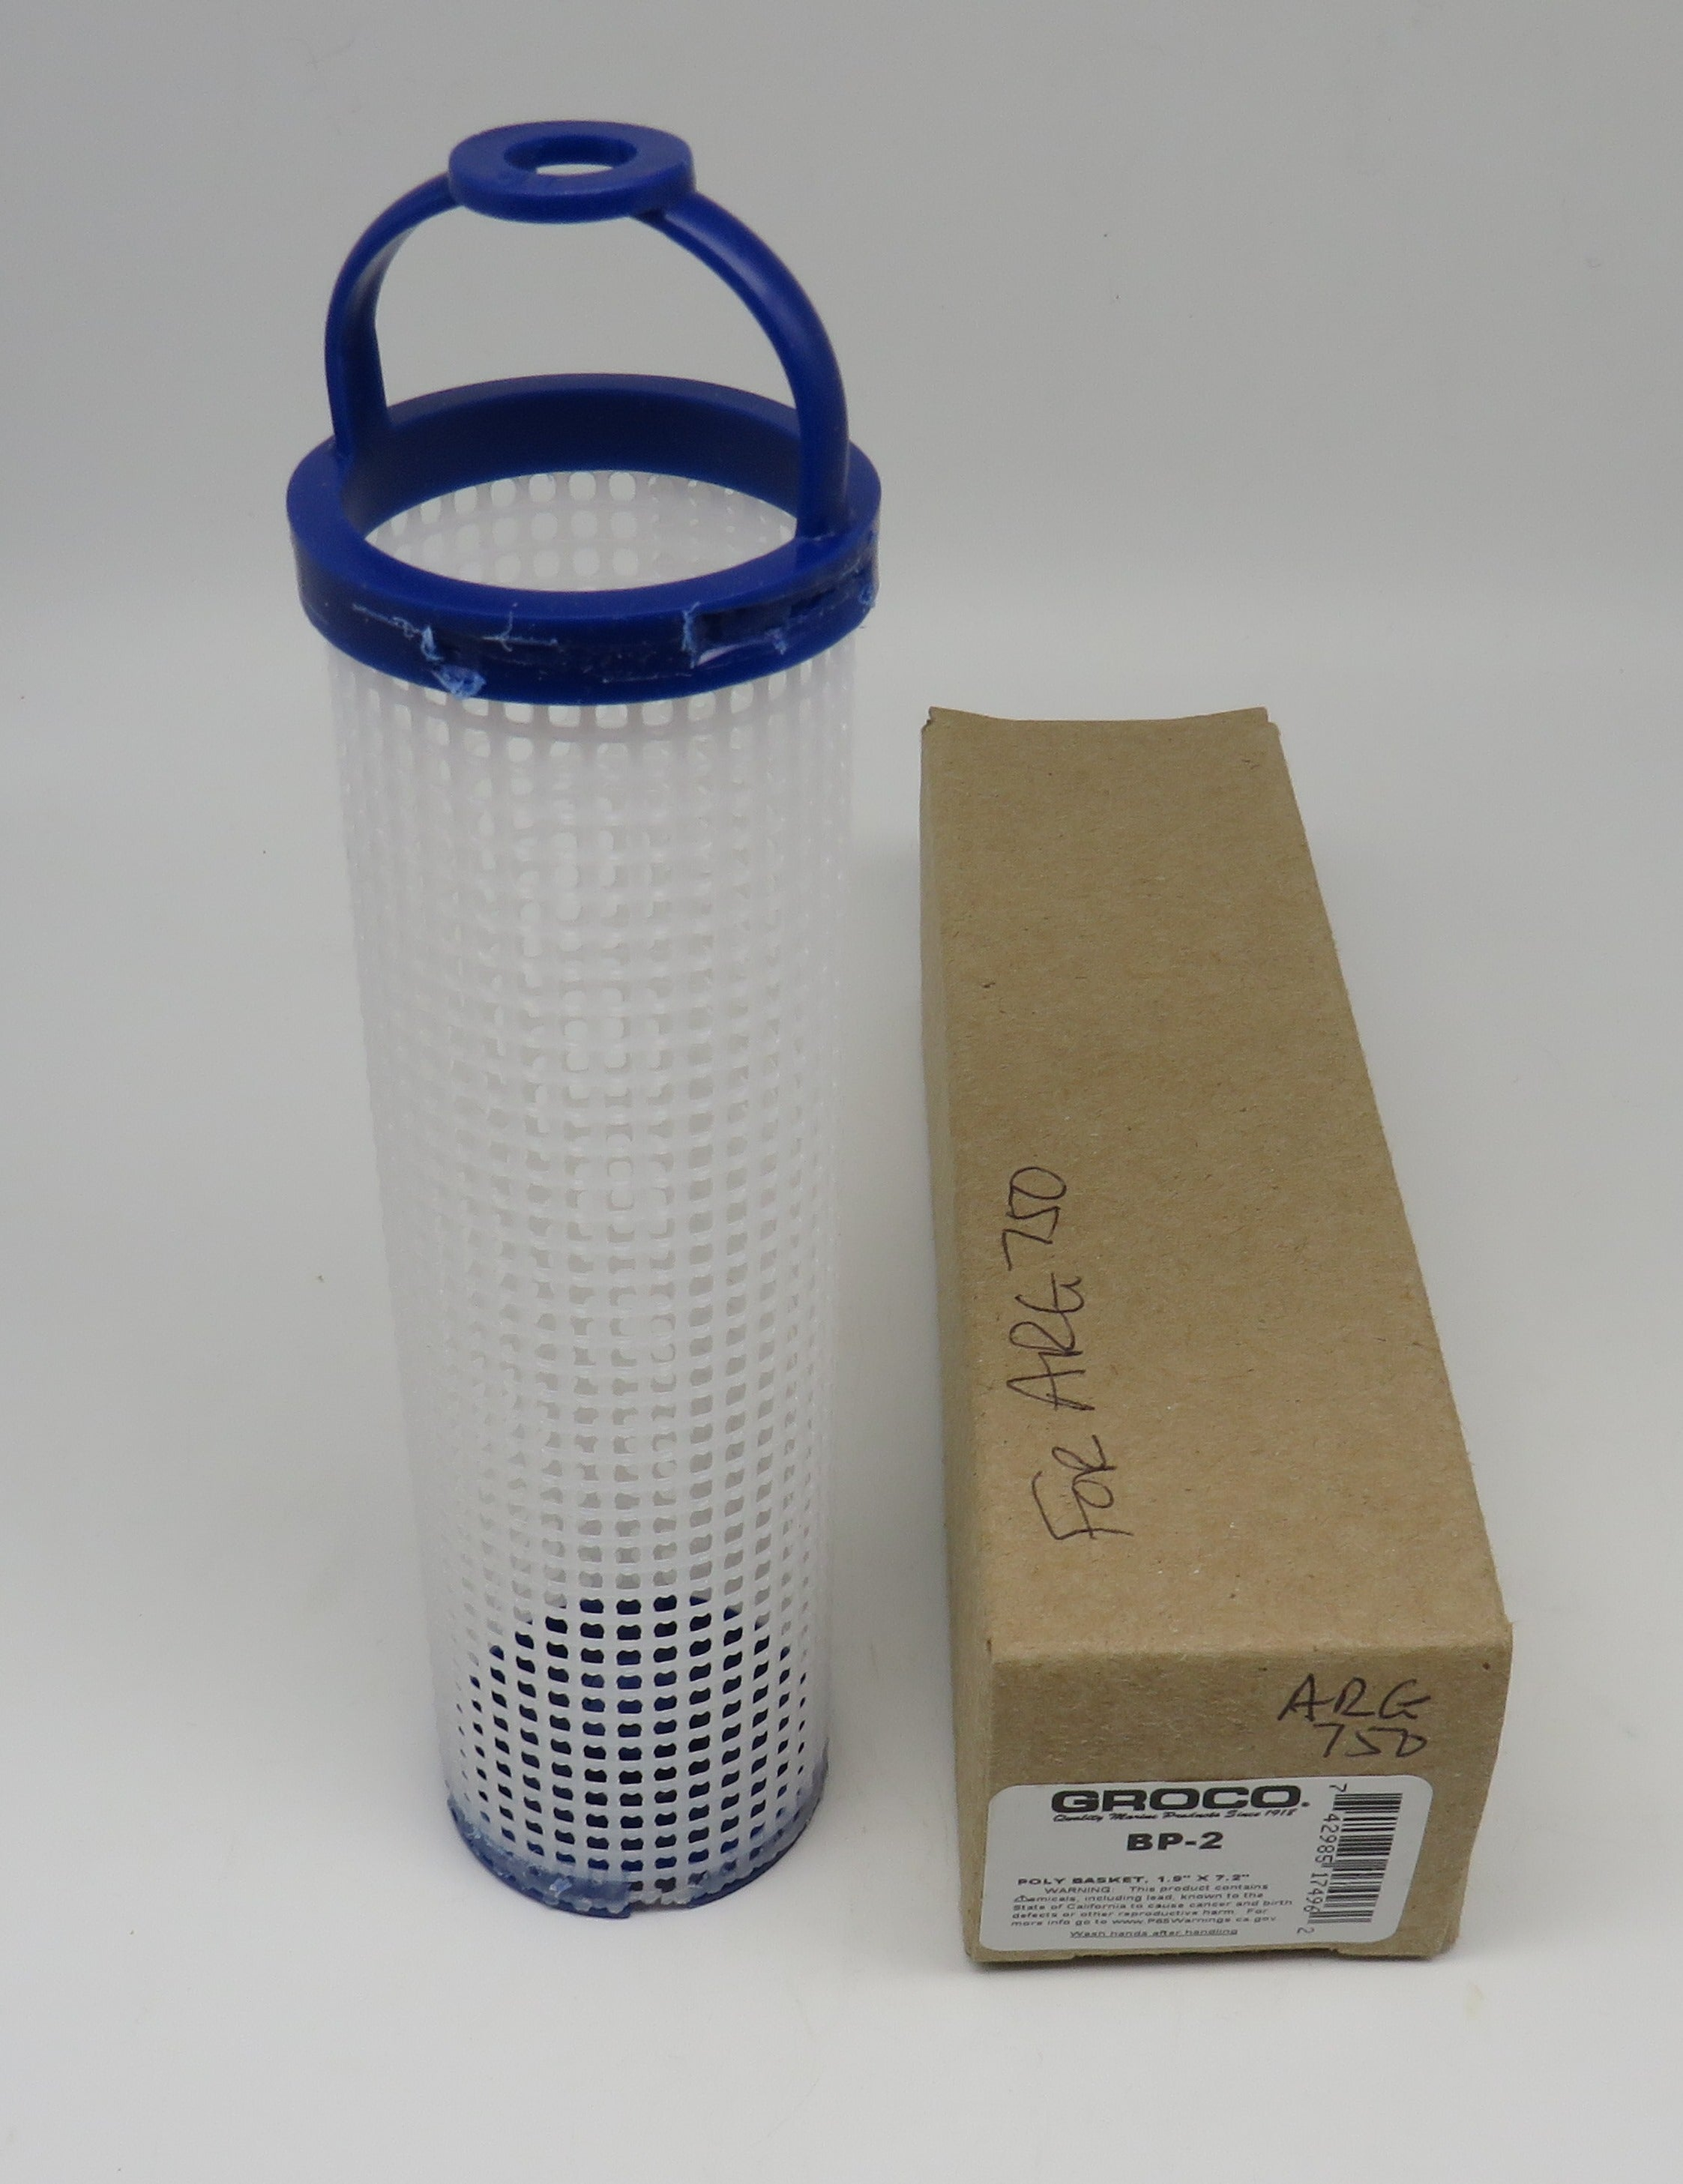 BP-2 Groco Strainer Basket Plastic For ARG 750 (Also, PS-69-C)